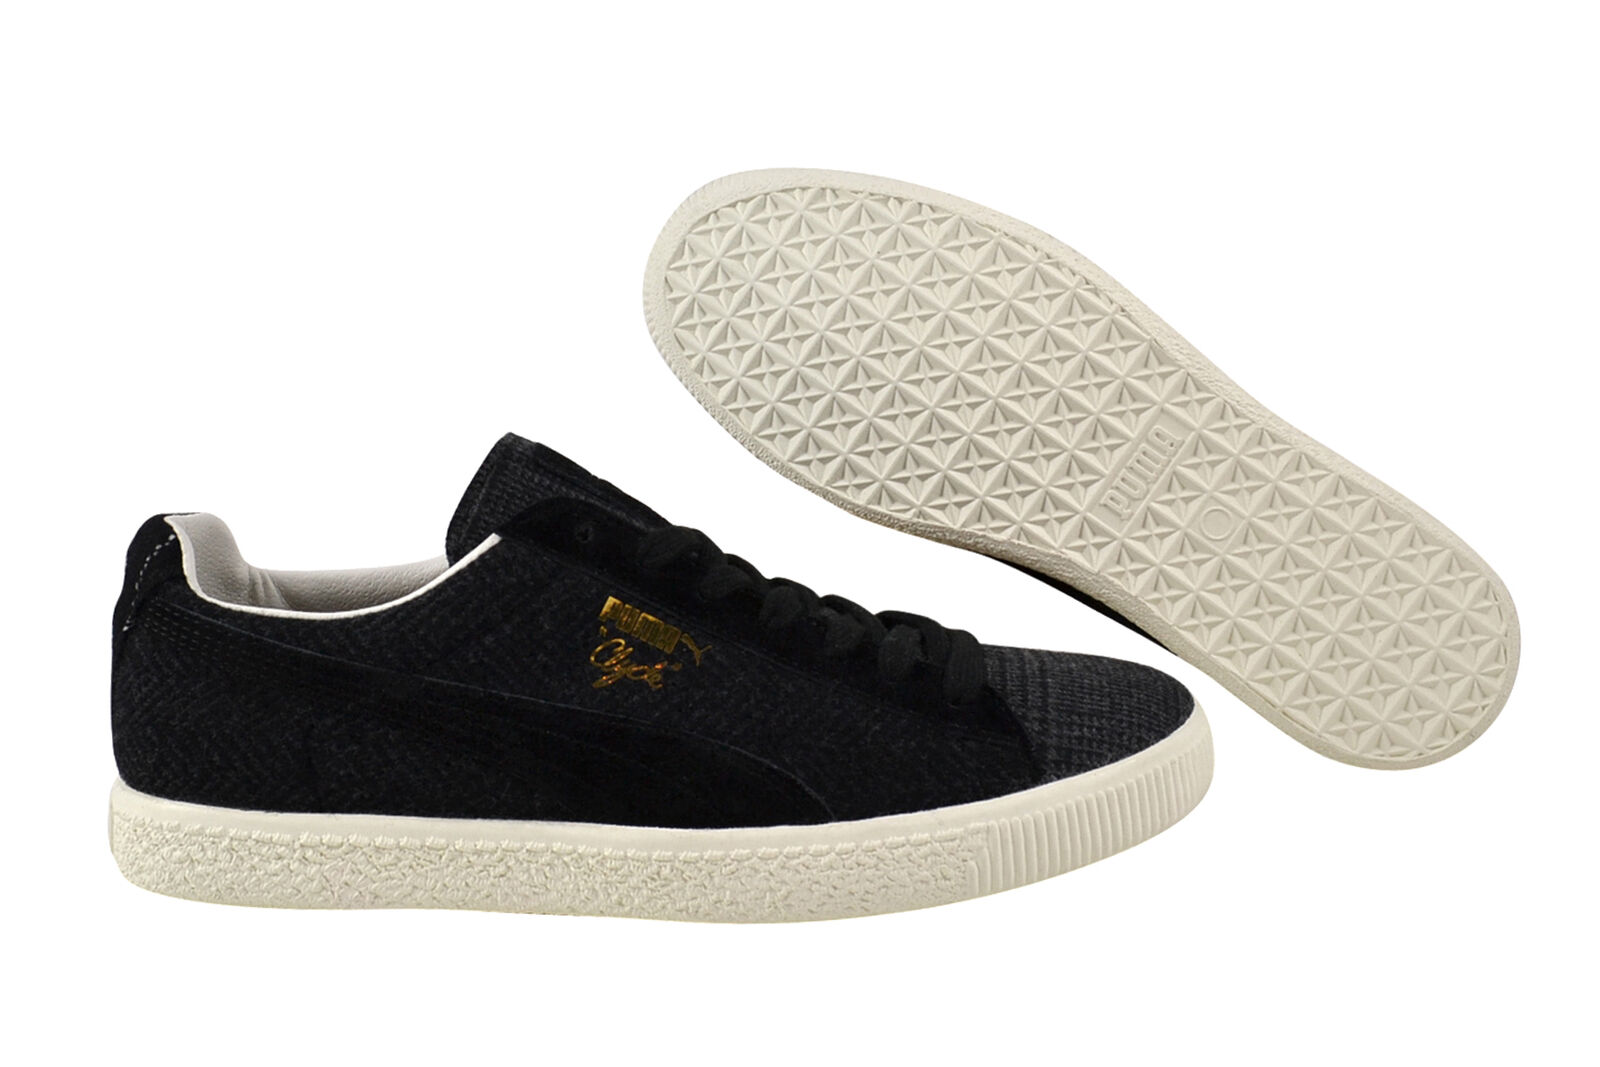 Puma jpn Clyde x United Arrows & Sons negro zapatilla de deporte zapatos negro